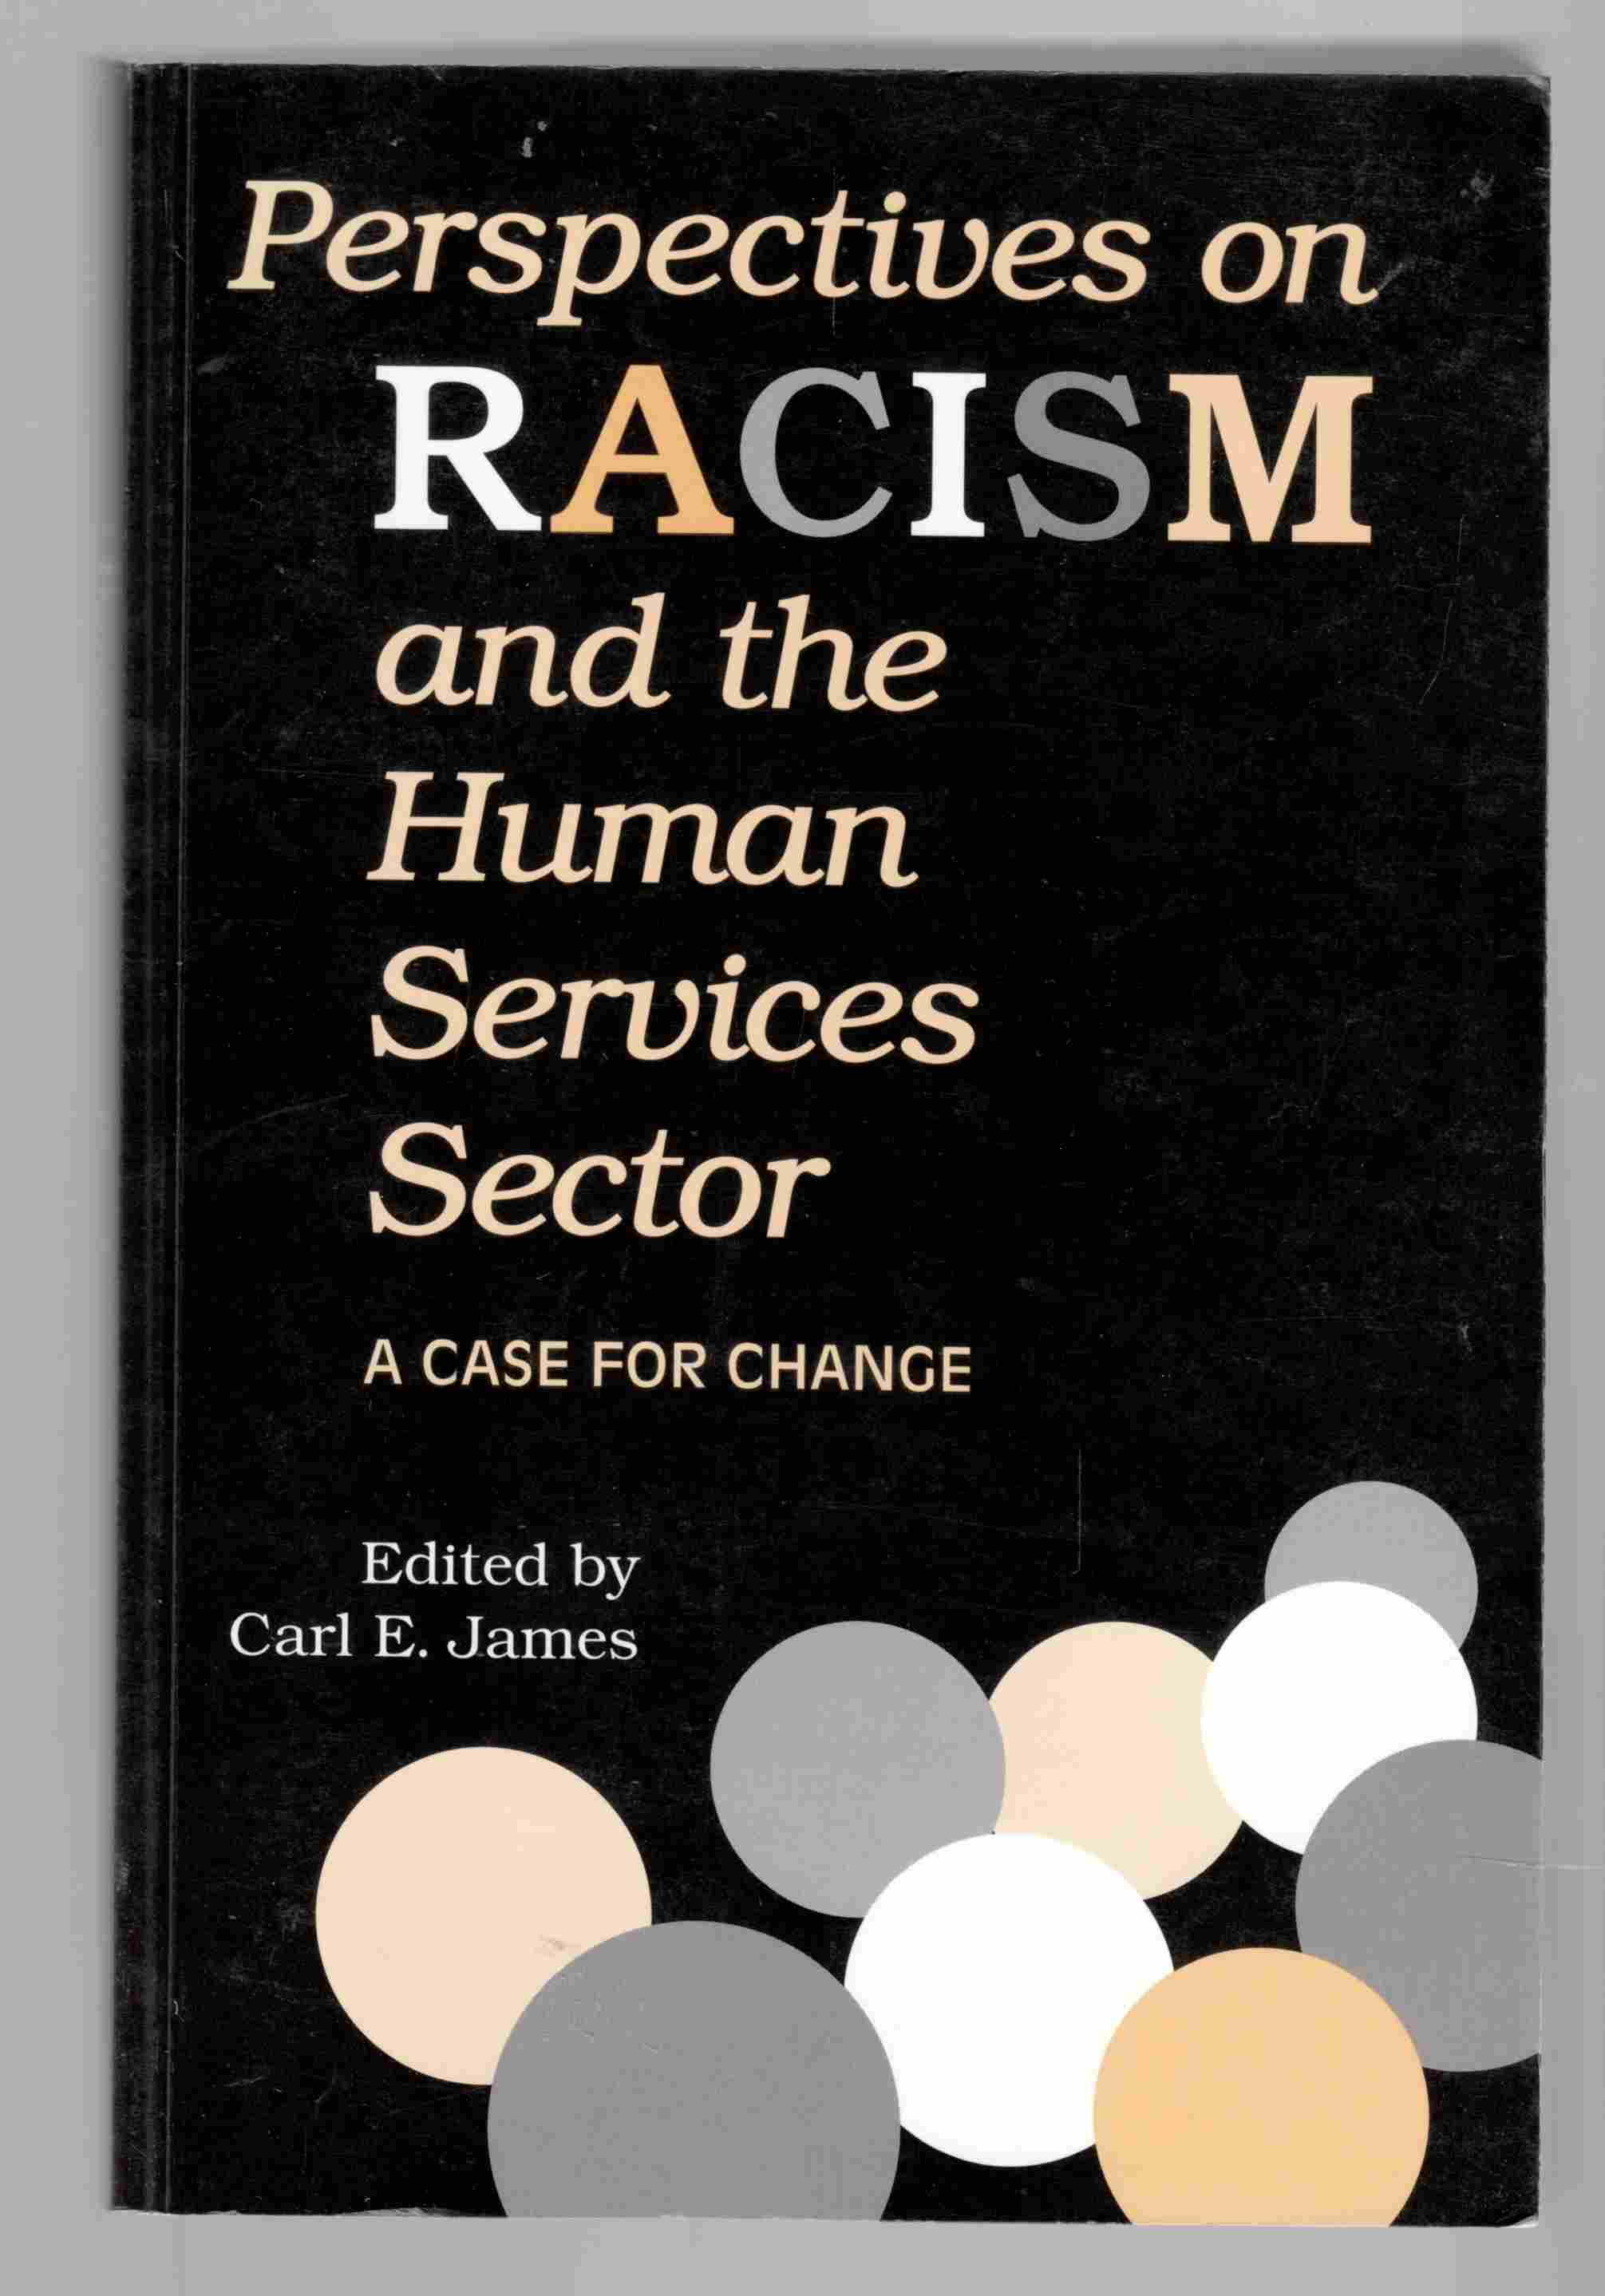 Image for Perspectives on Racism and the Human Services Sector A Case for Change